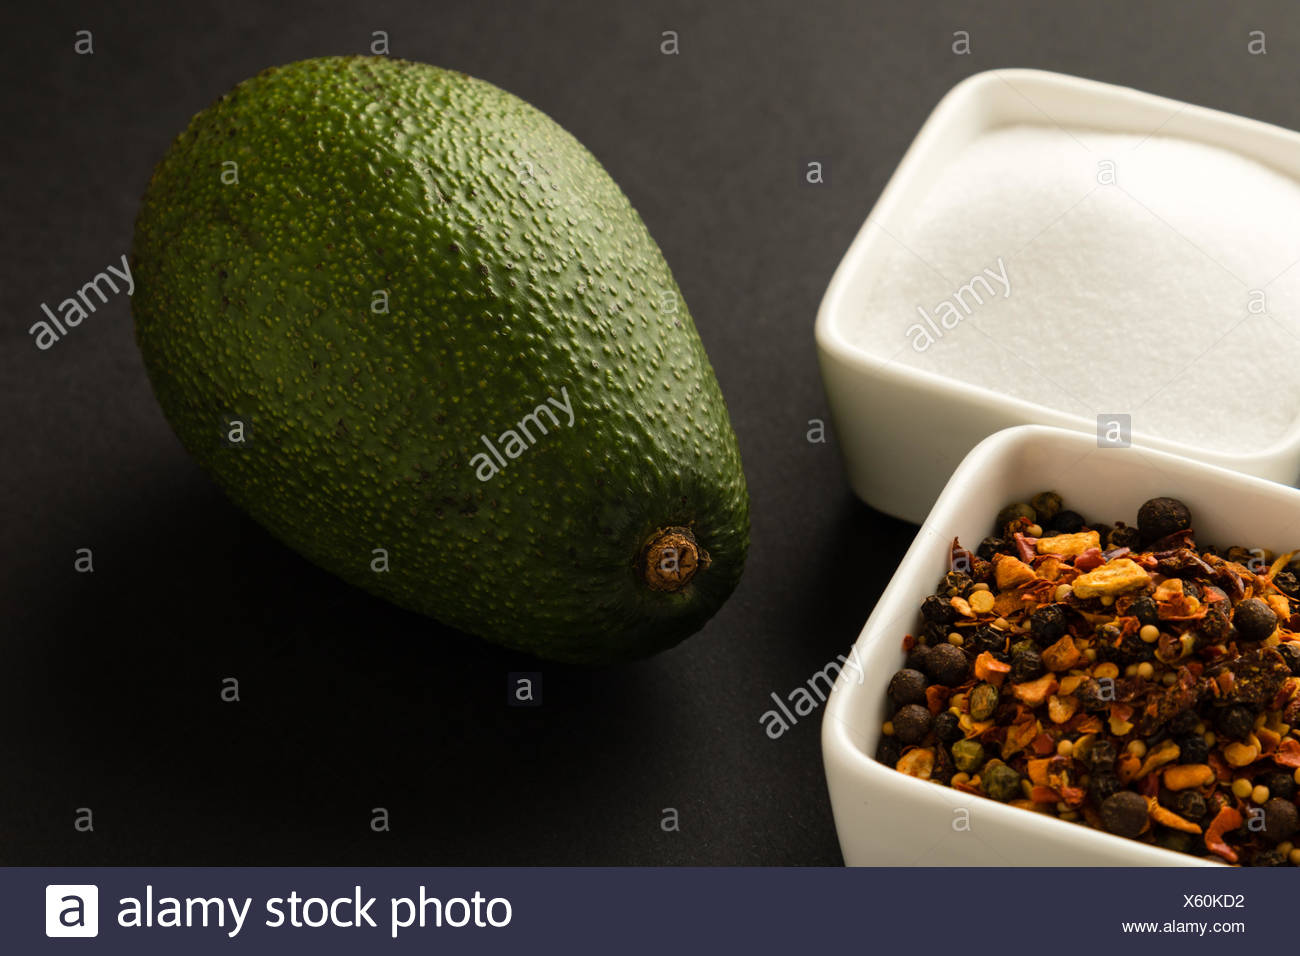 Avocat avec assaisonnement Photo Stock